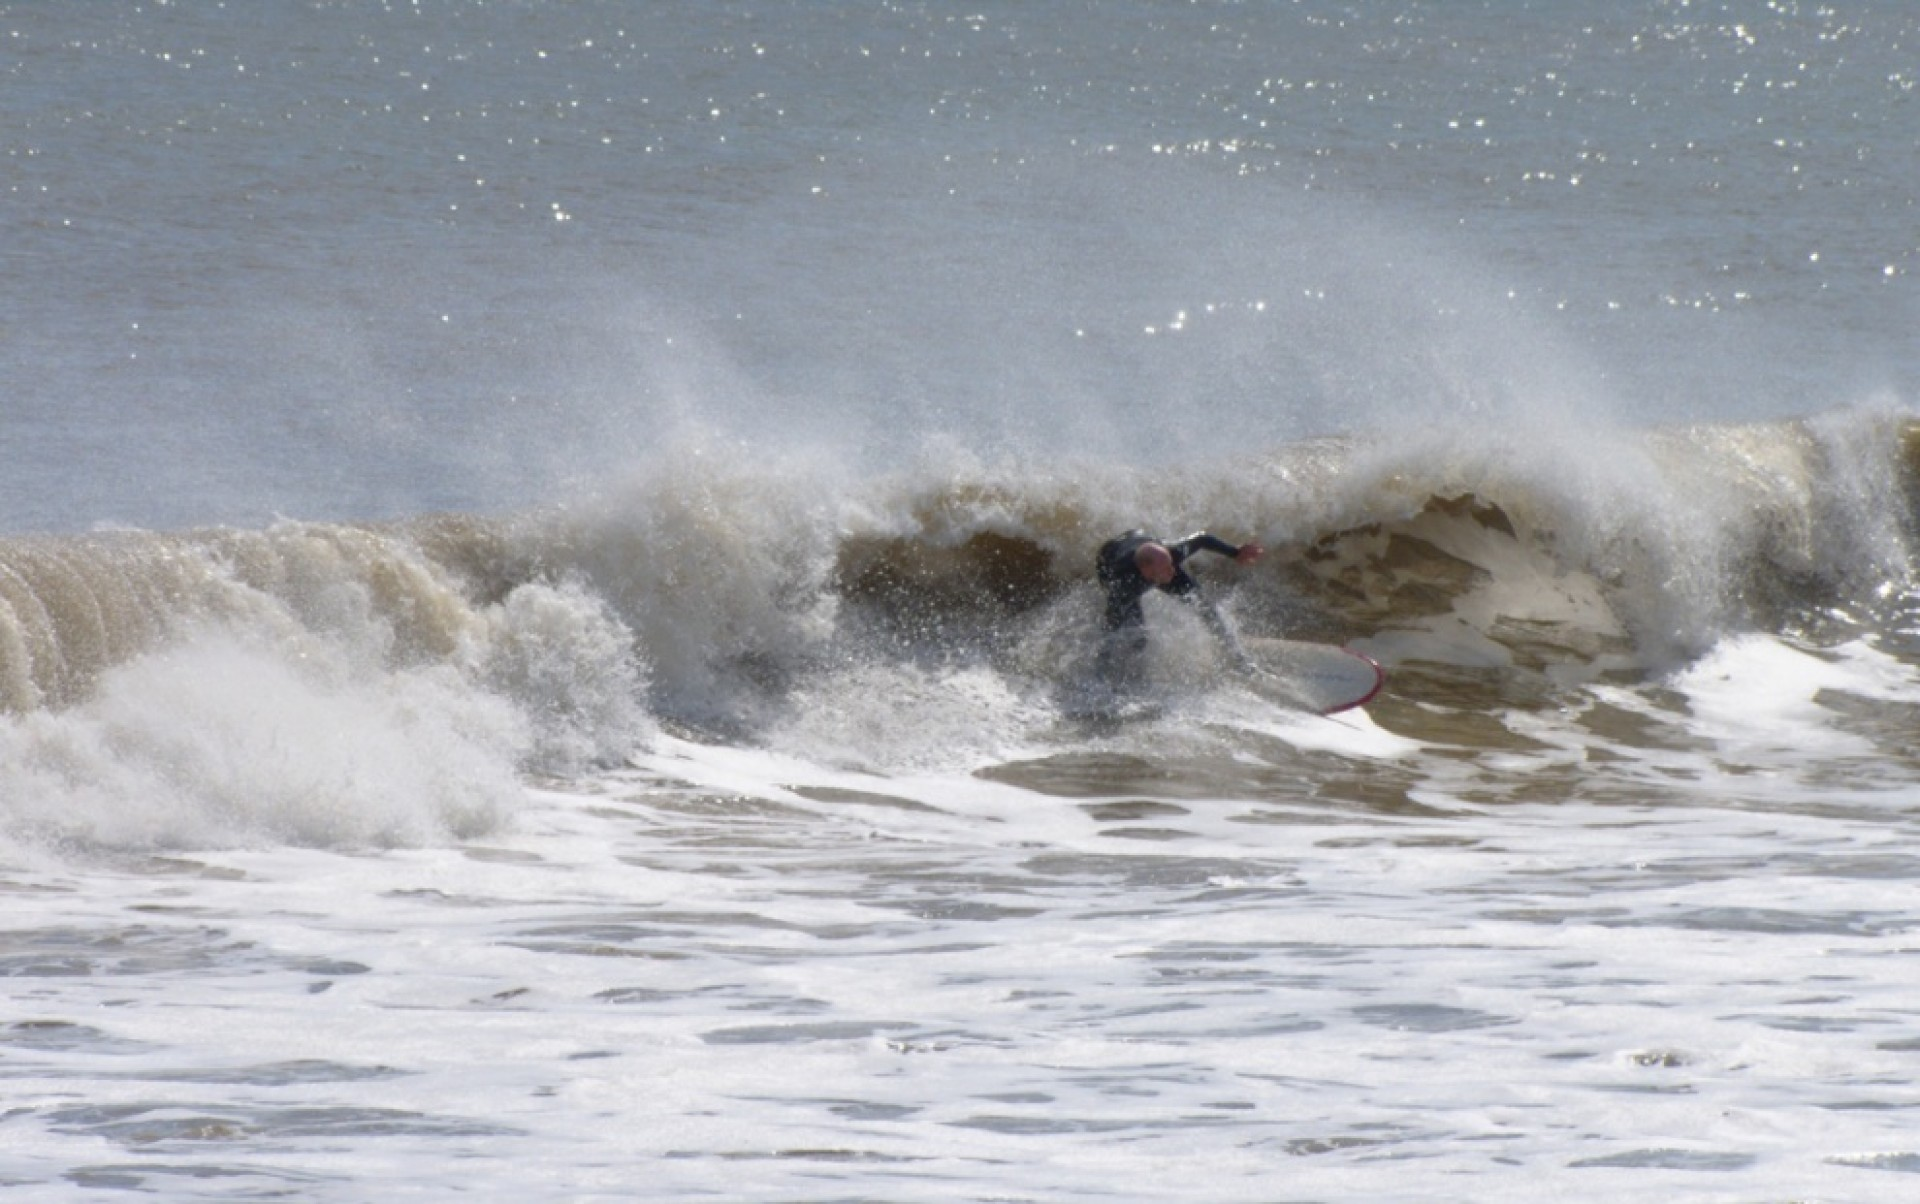 Mike Spencer's photo of Skegness